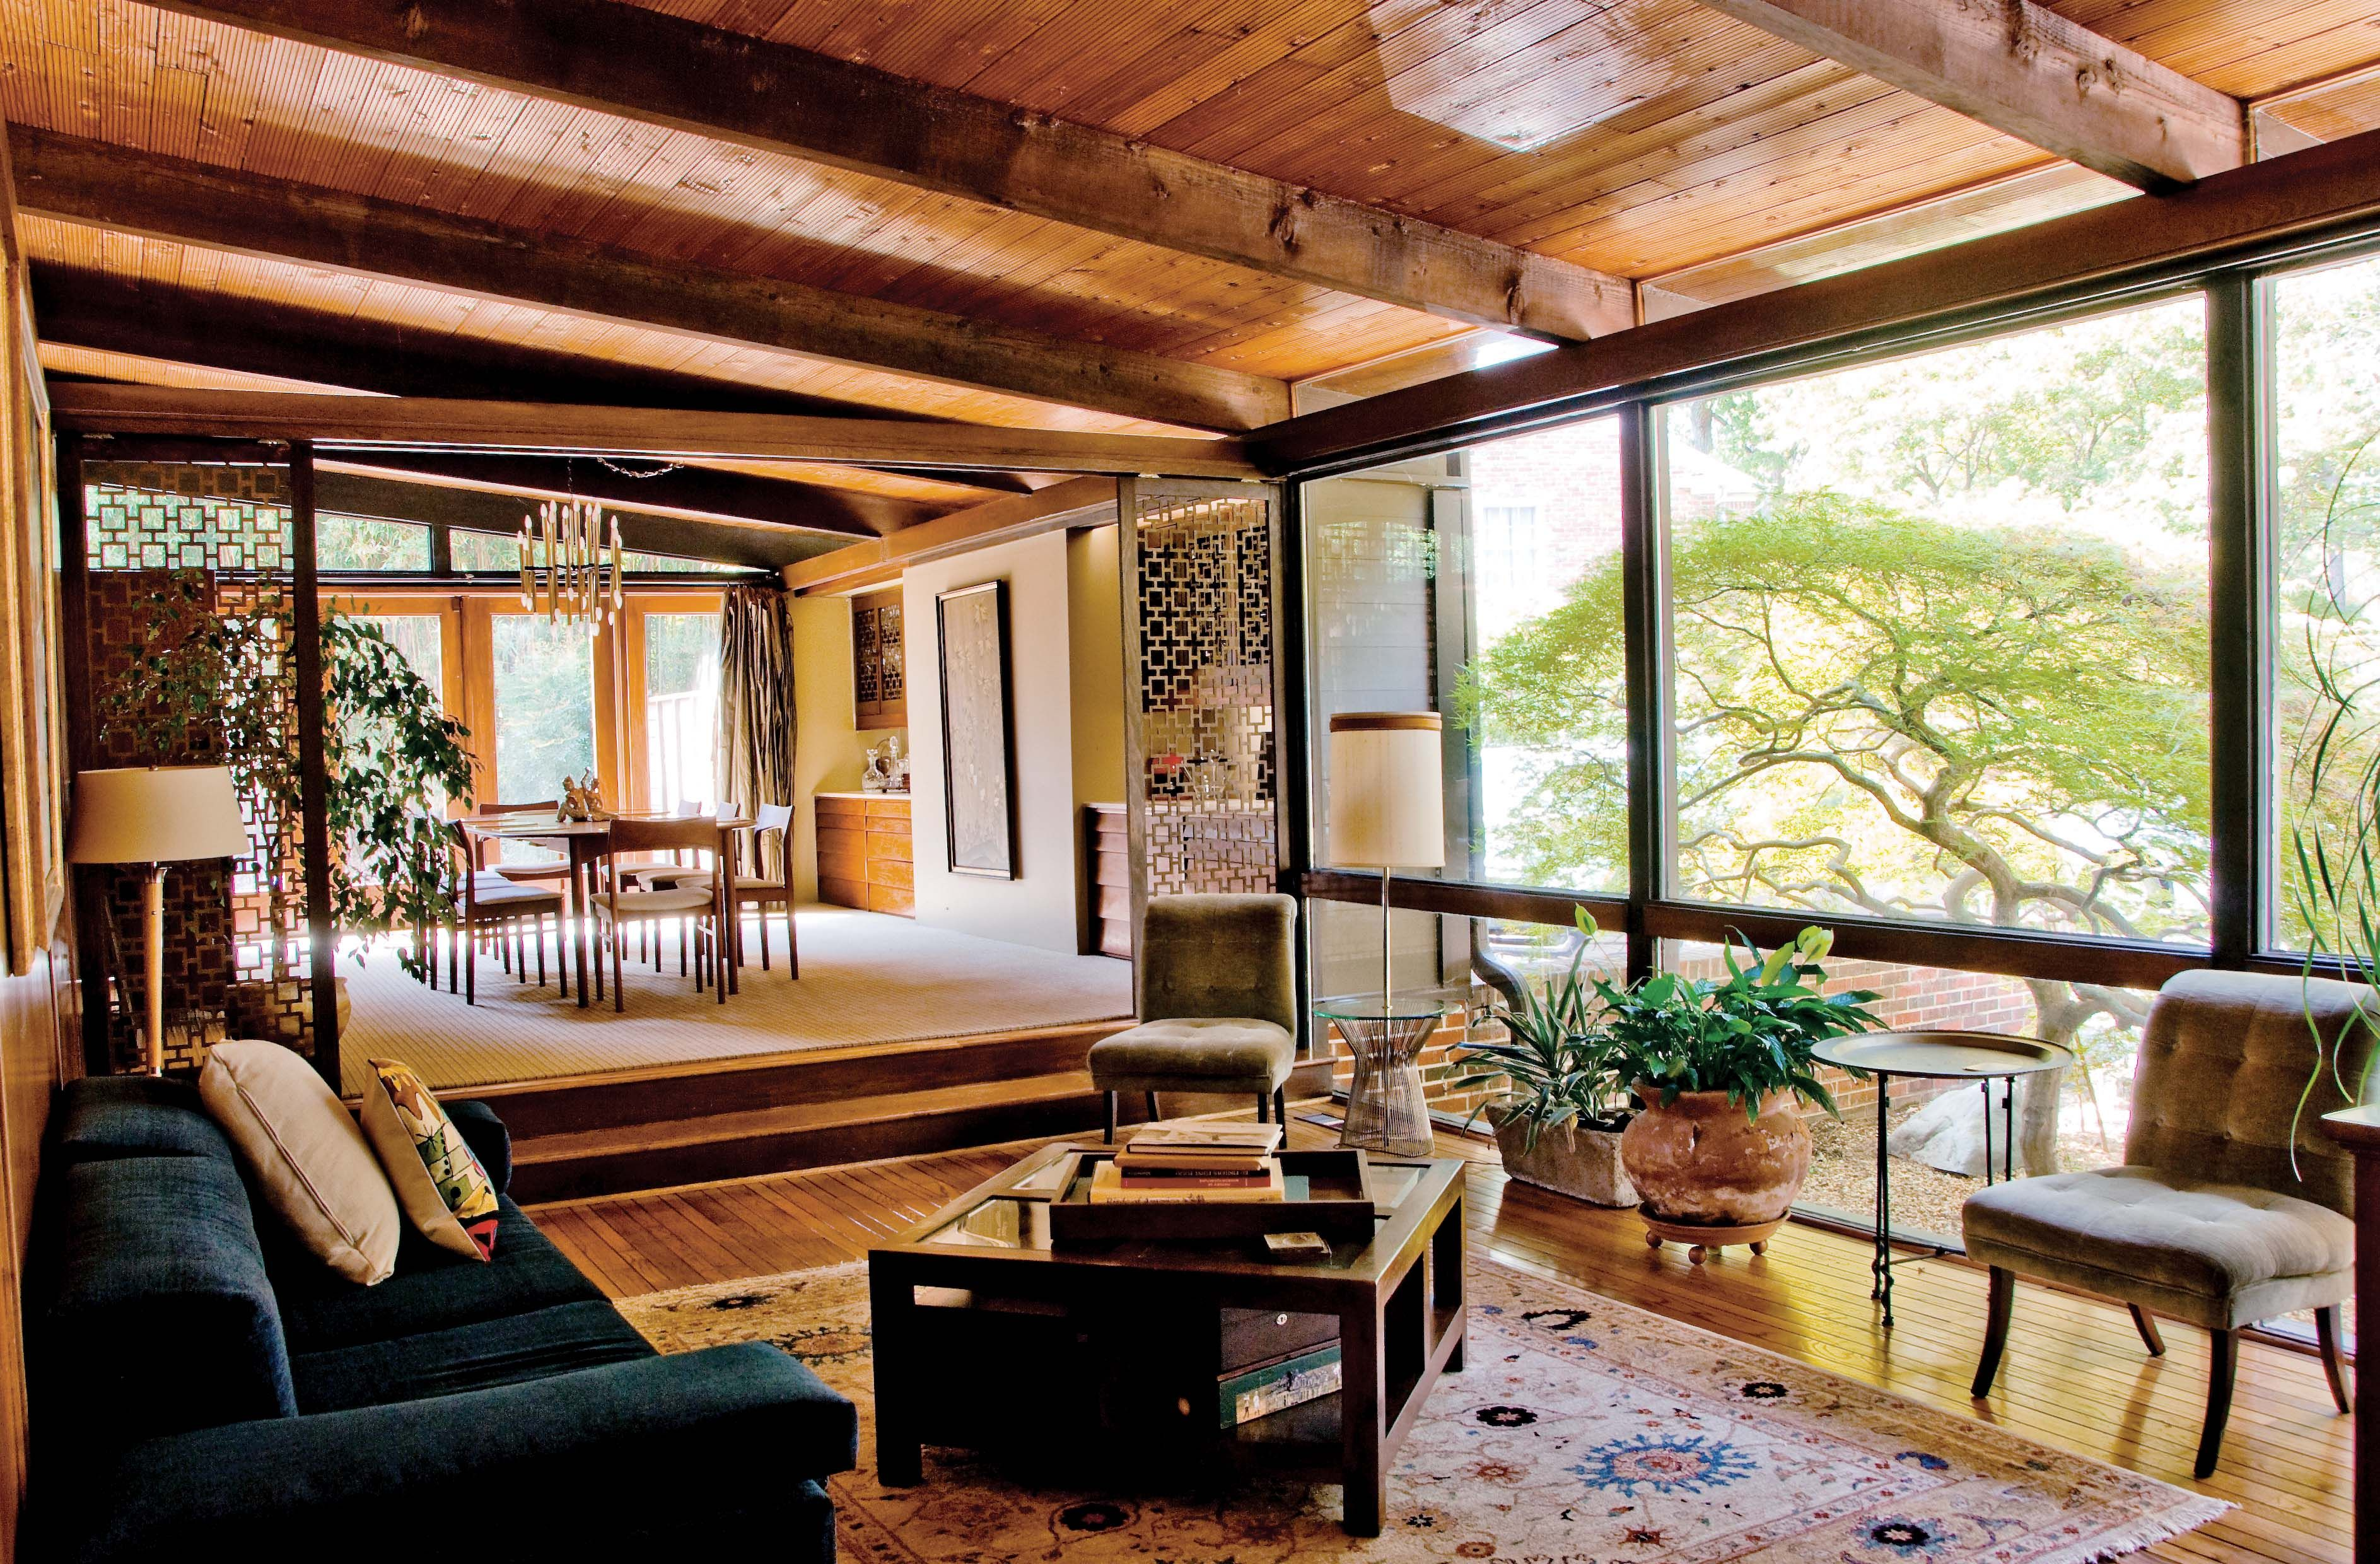 wood and glass mid century modern interiors images - google search